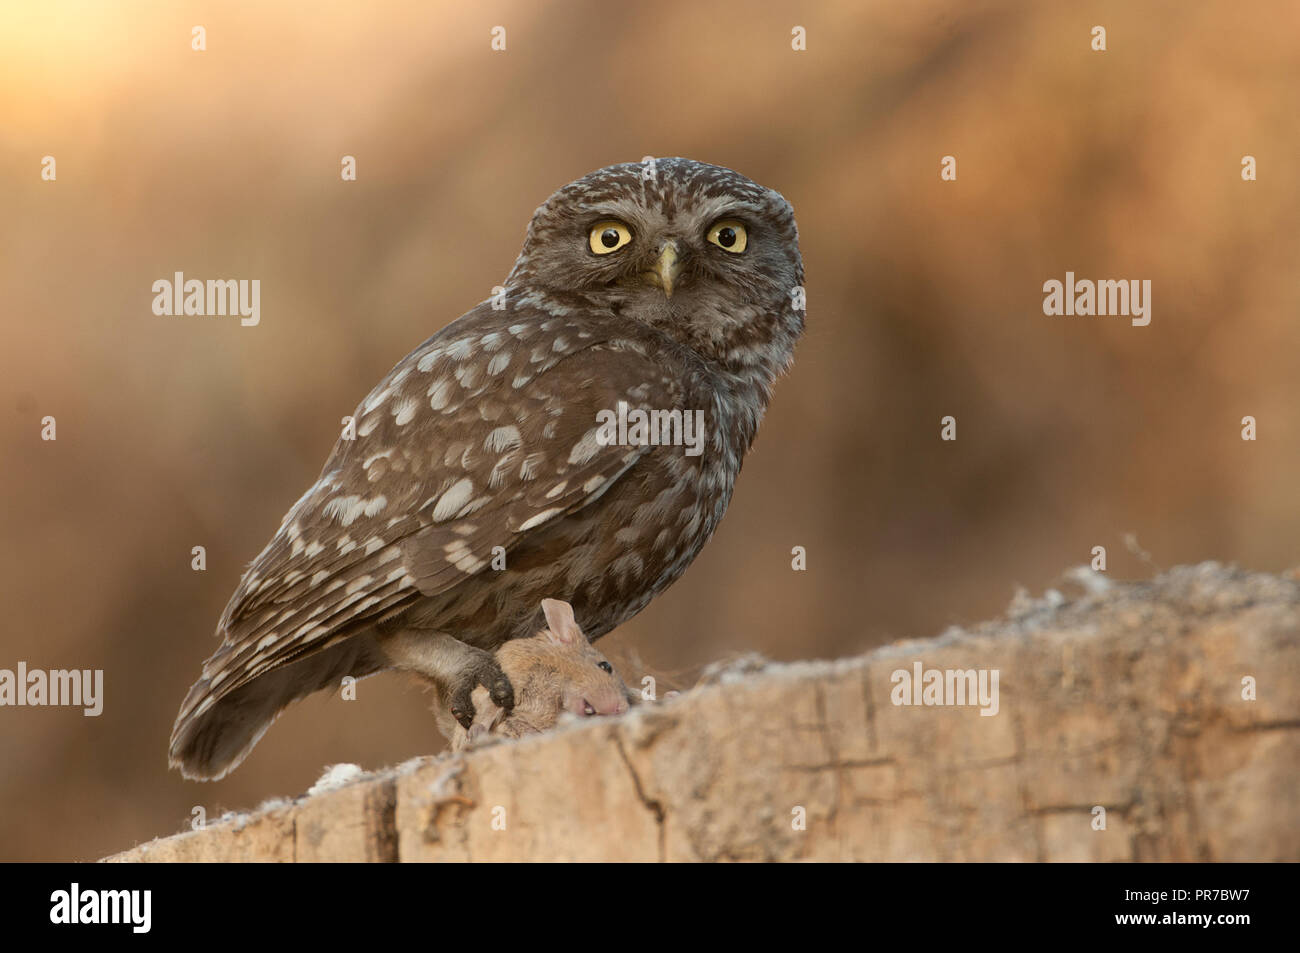 Pixabay The Little Owl Nocturnal Birds Of Prey Athene Noctua Perched On Branch With Mouse Recently Hunted Alamy The Little Owl Nocturnal Birds Of Prey Athene Noctua Perched On